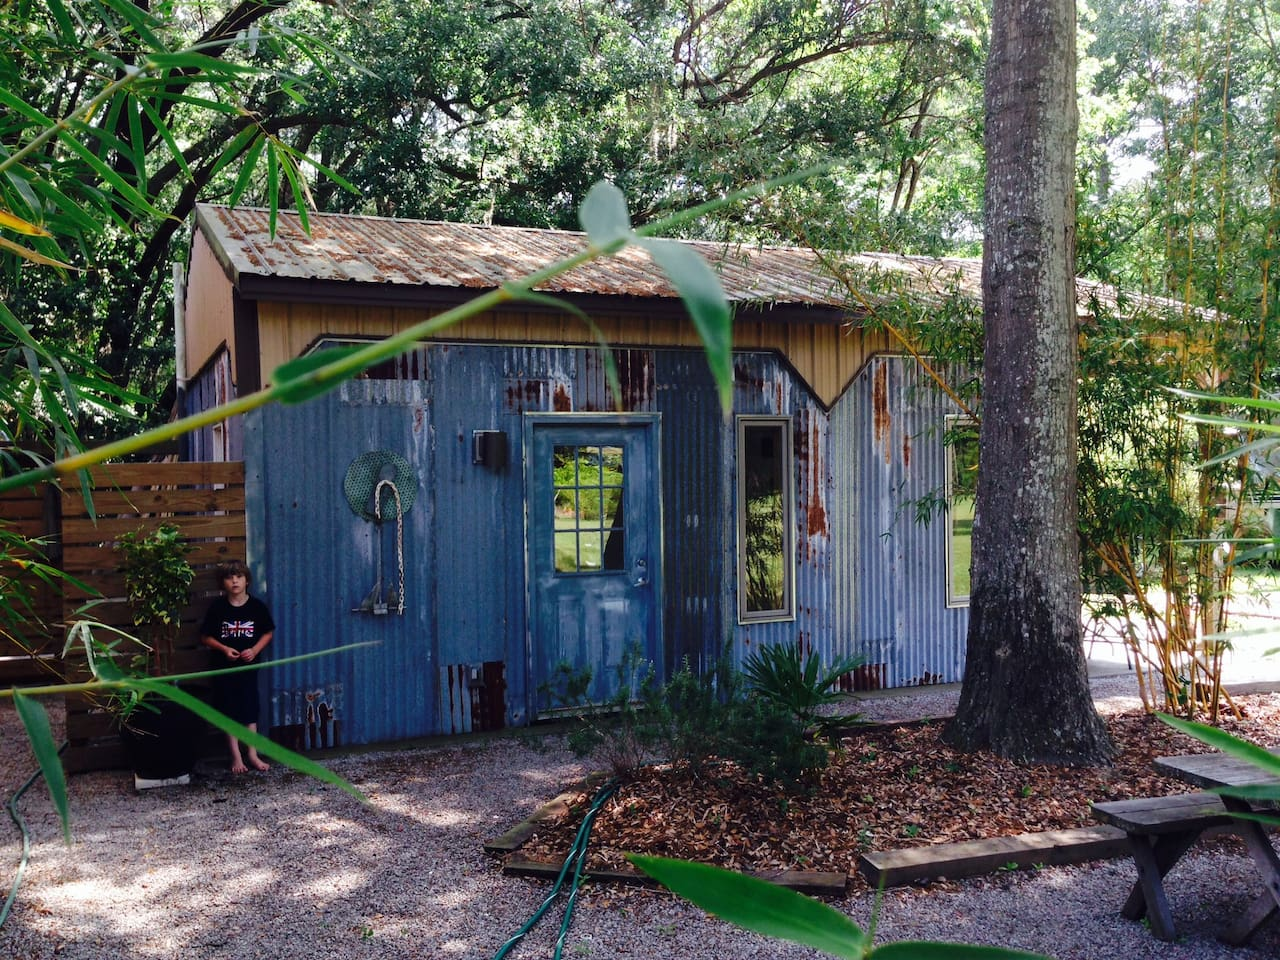 Come stay at our cute, comfortable fishing shack - privately located under beautiful Oak trees.  Don't forget to roast some marshmallows over the huge fire pit!